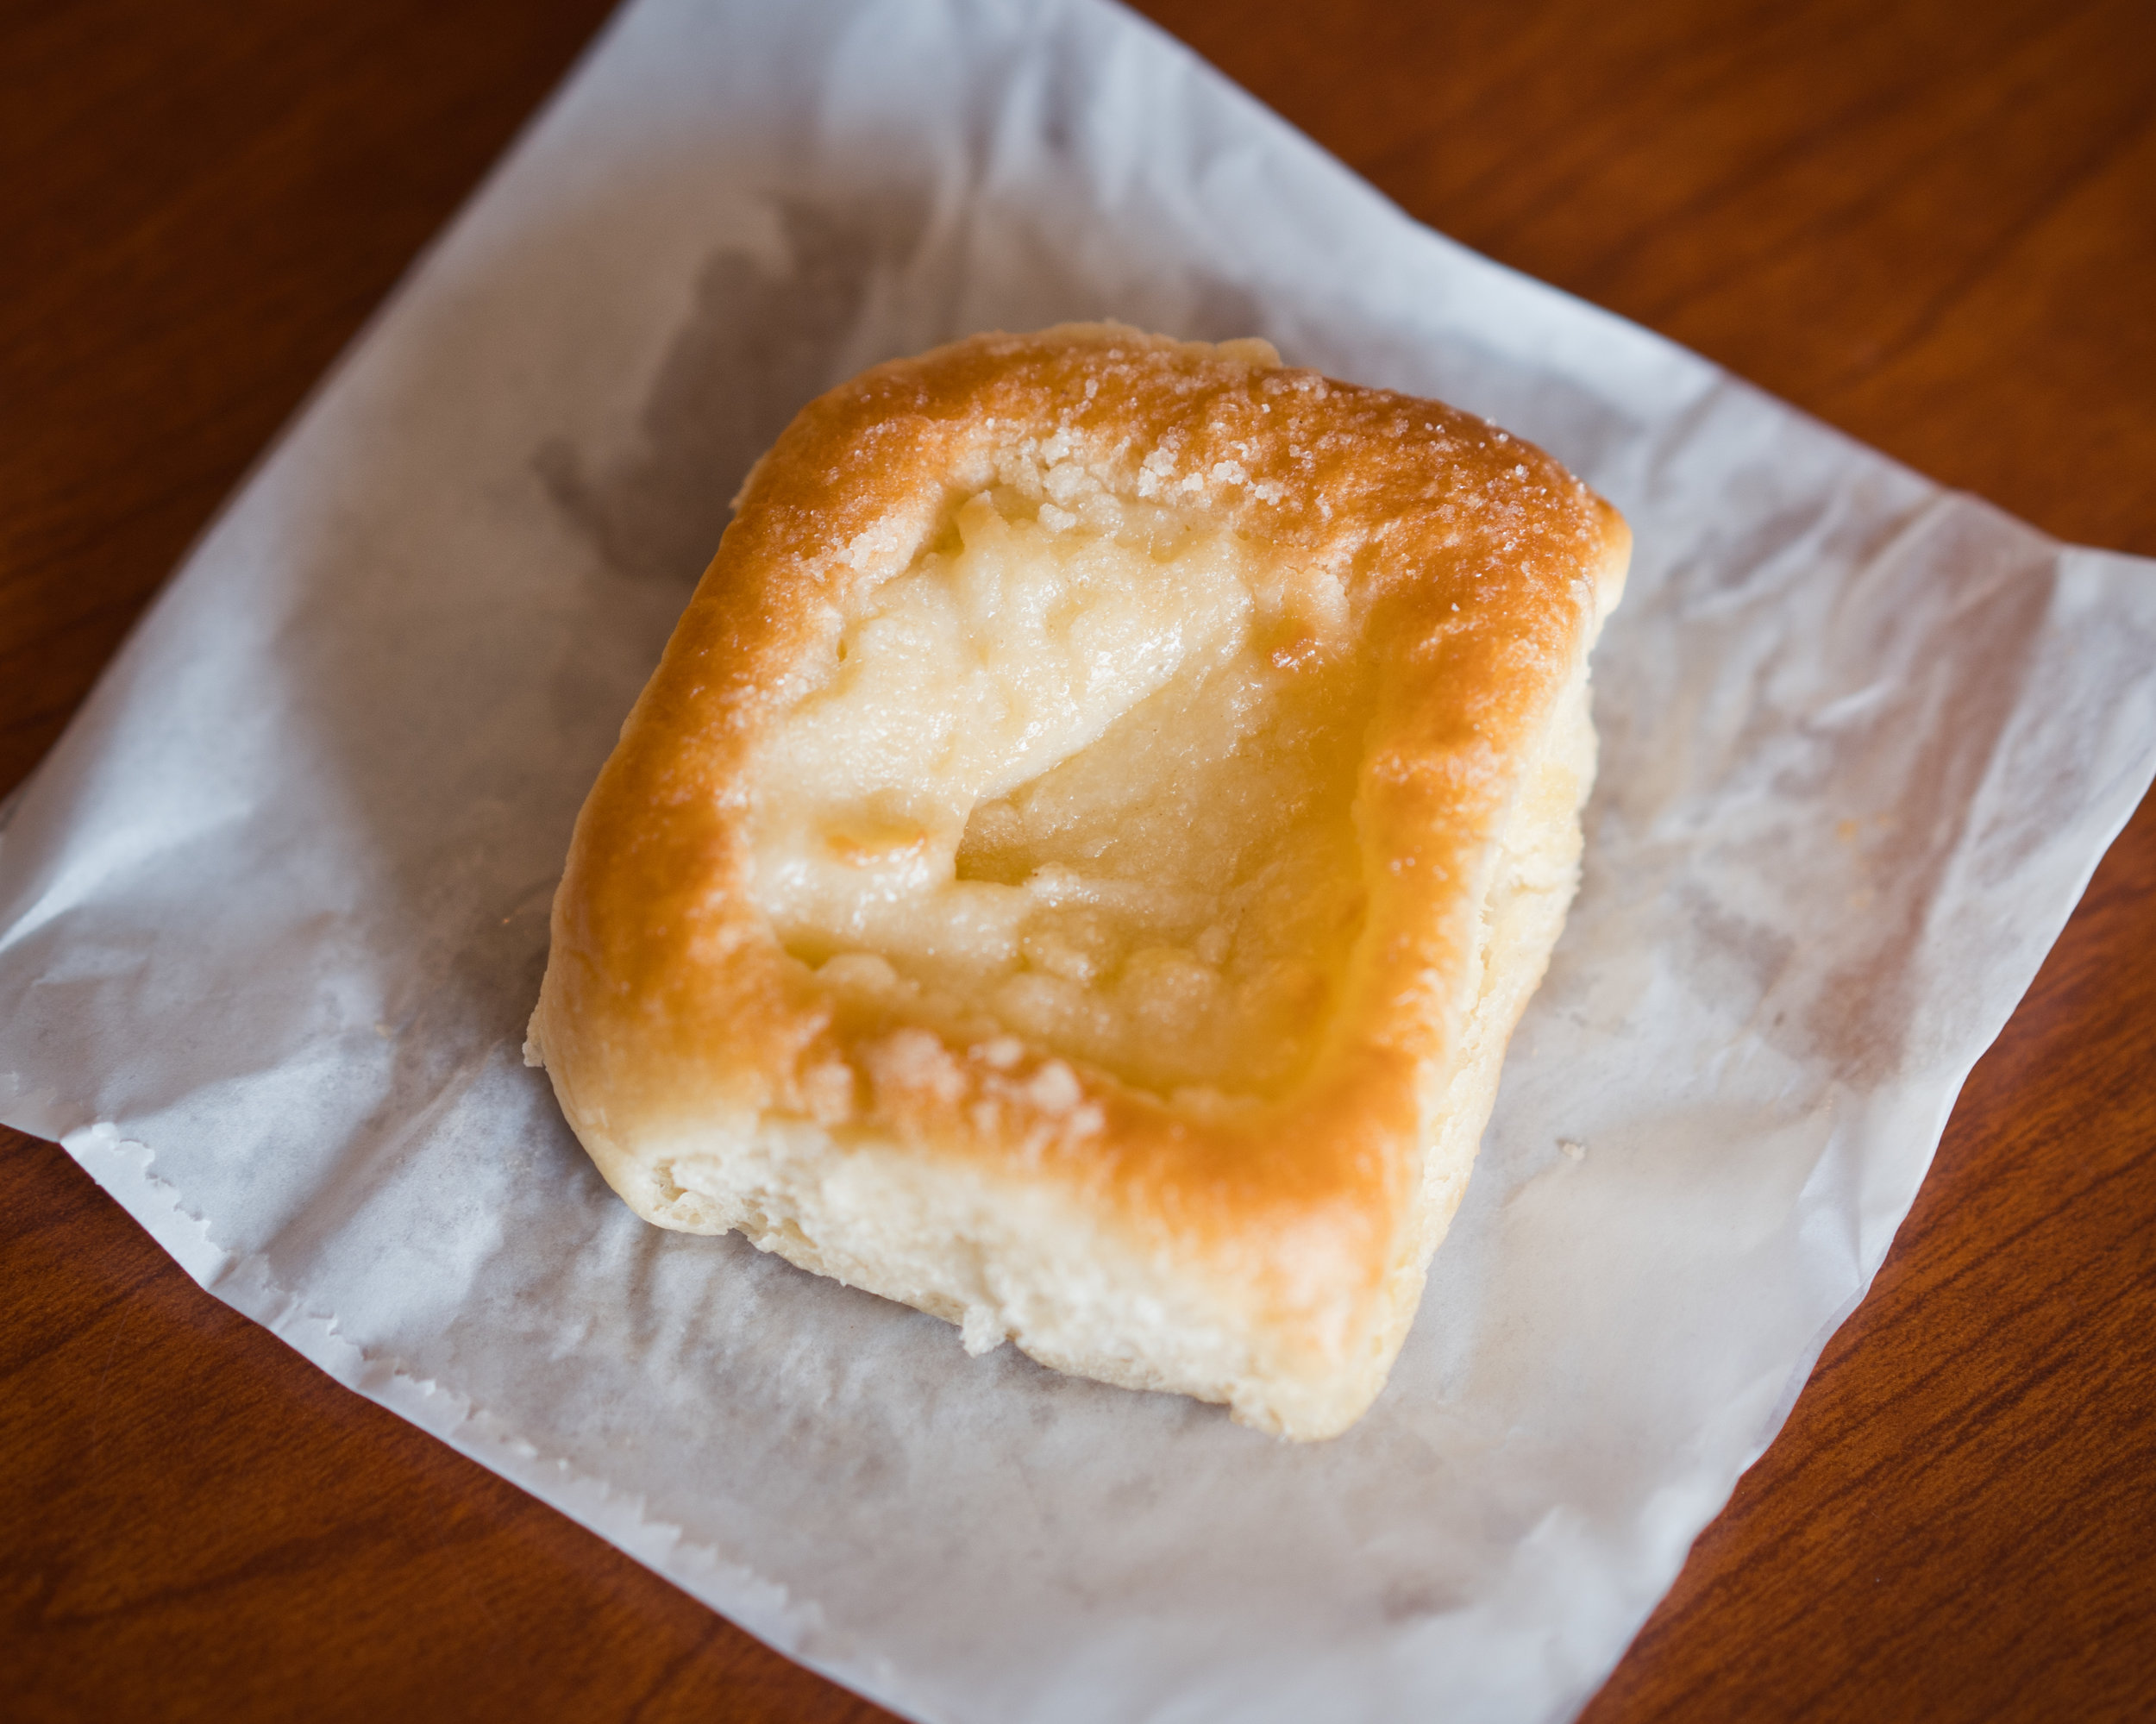 We were in for a real treat with Village Bakery's kolache. The cream cheese is the hero in this confection. It was unlike any other in our taste test. Angel kisses must be on the list of ingredients. The pastry had the same sweetness as the sausage roll and that's a good thing.